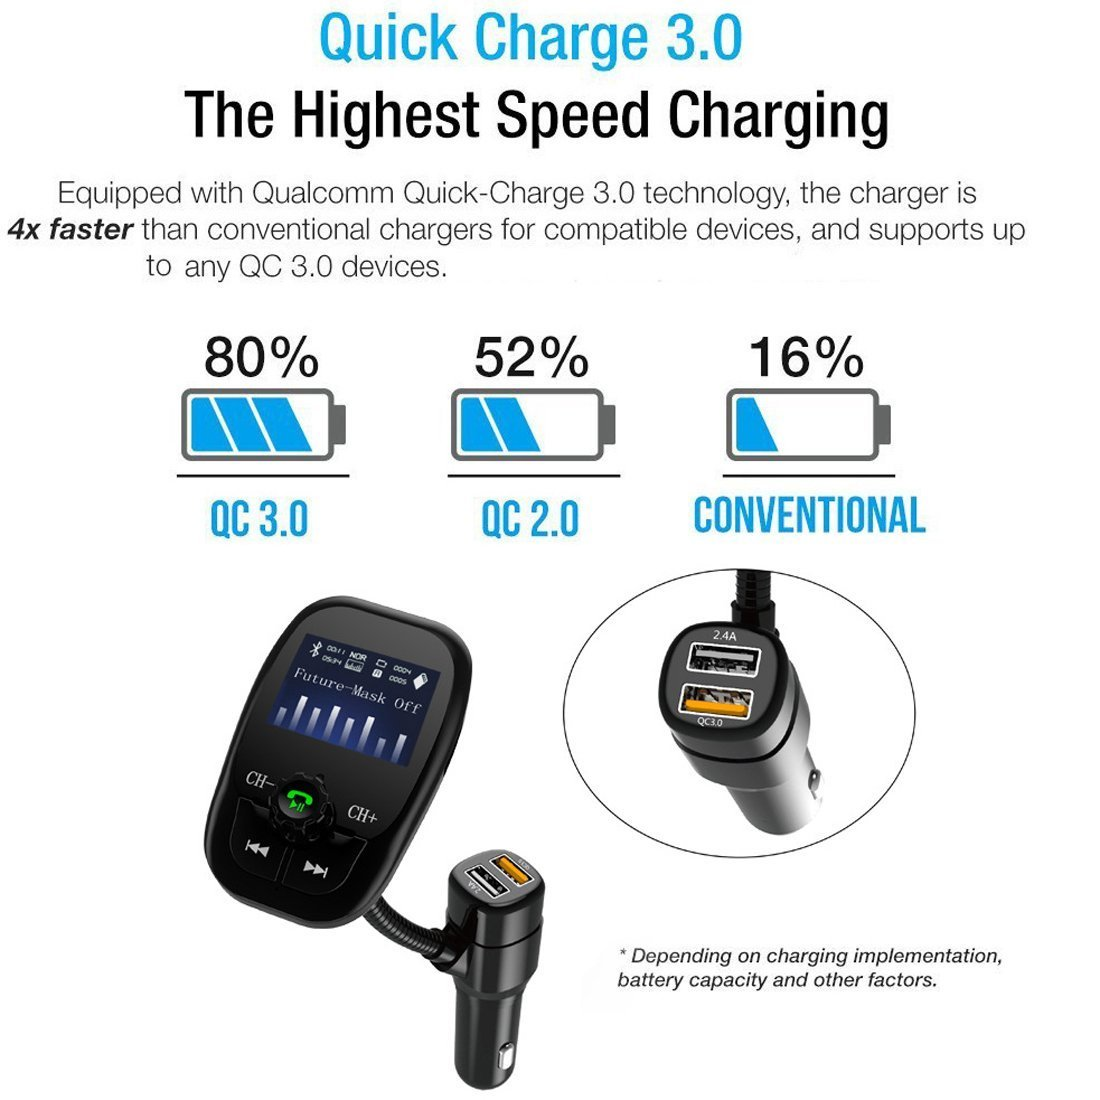 Bluetooth Car Fm Transmitter With Quick Charge 30 Three Stage 9v Wireless Hands Free Dual Usb Cell Phone Vehicle Charger Support Flash Drive Micro